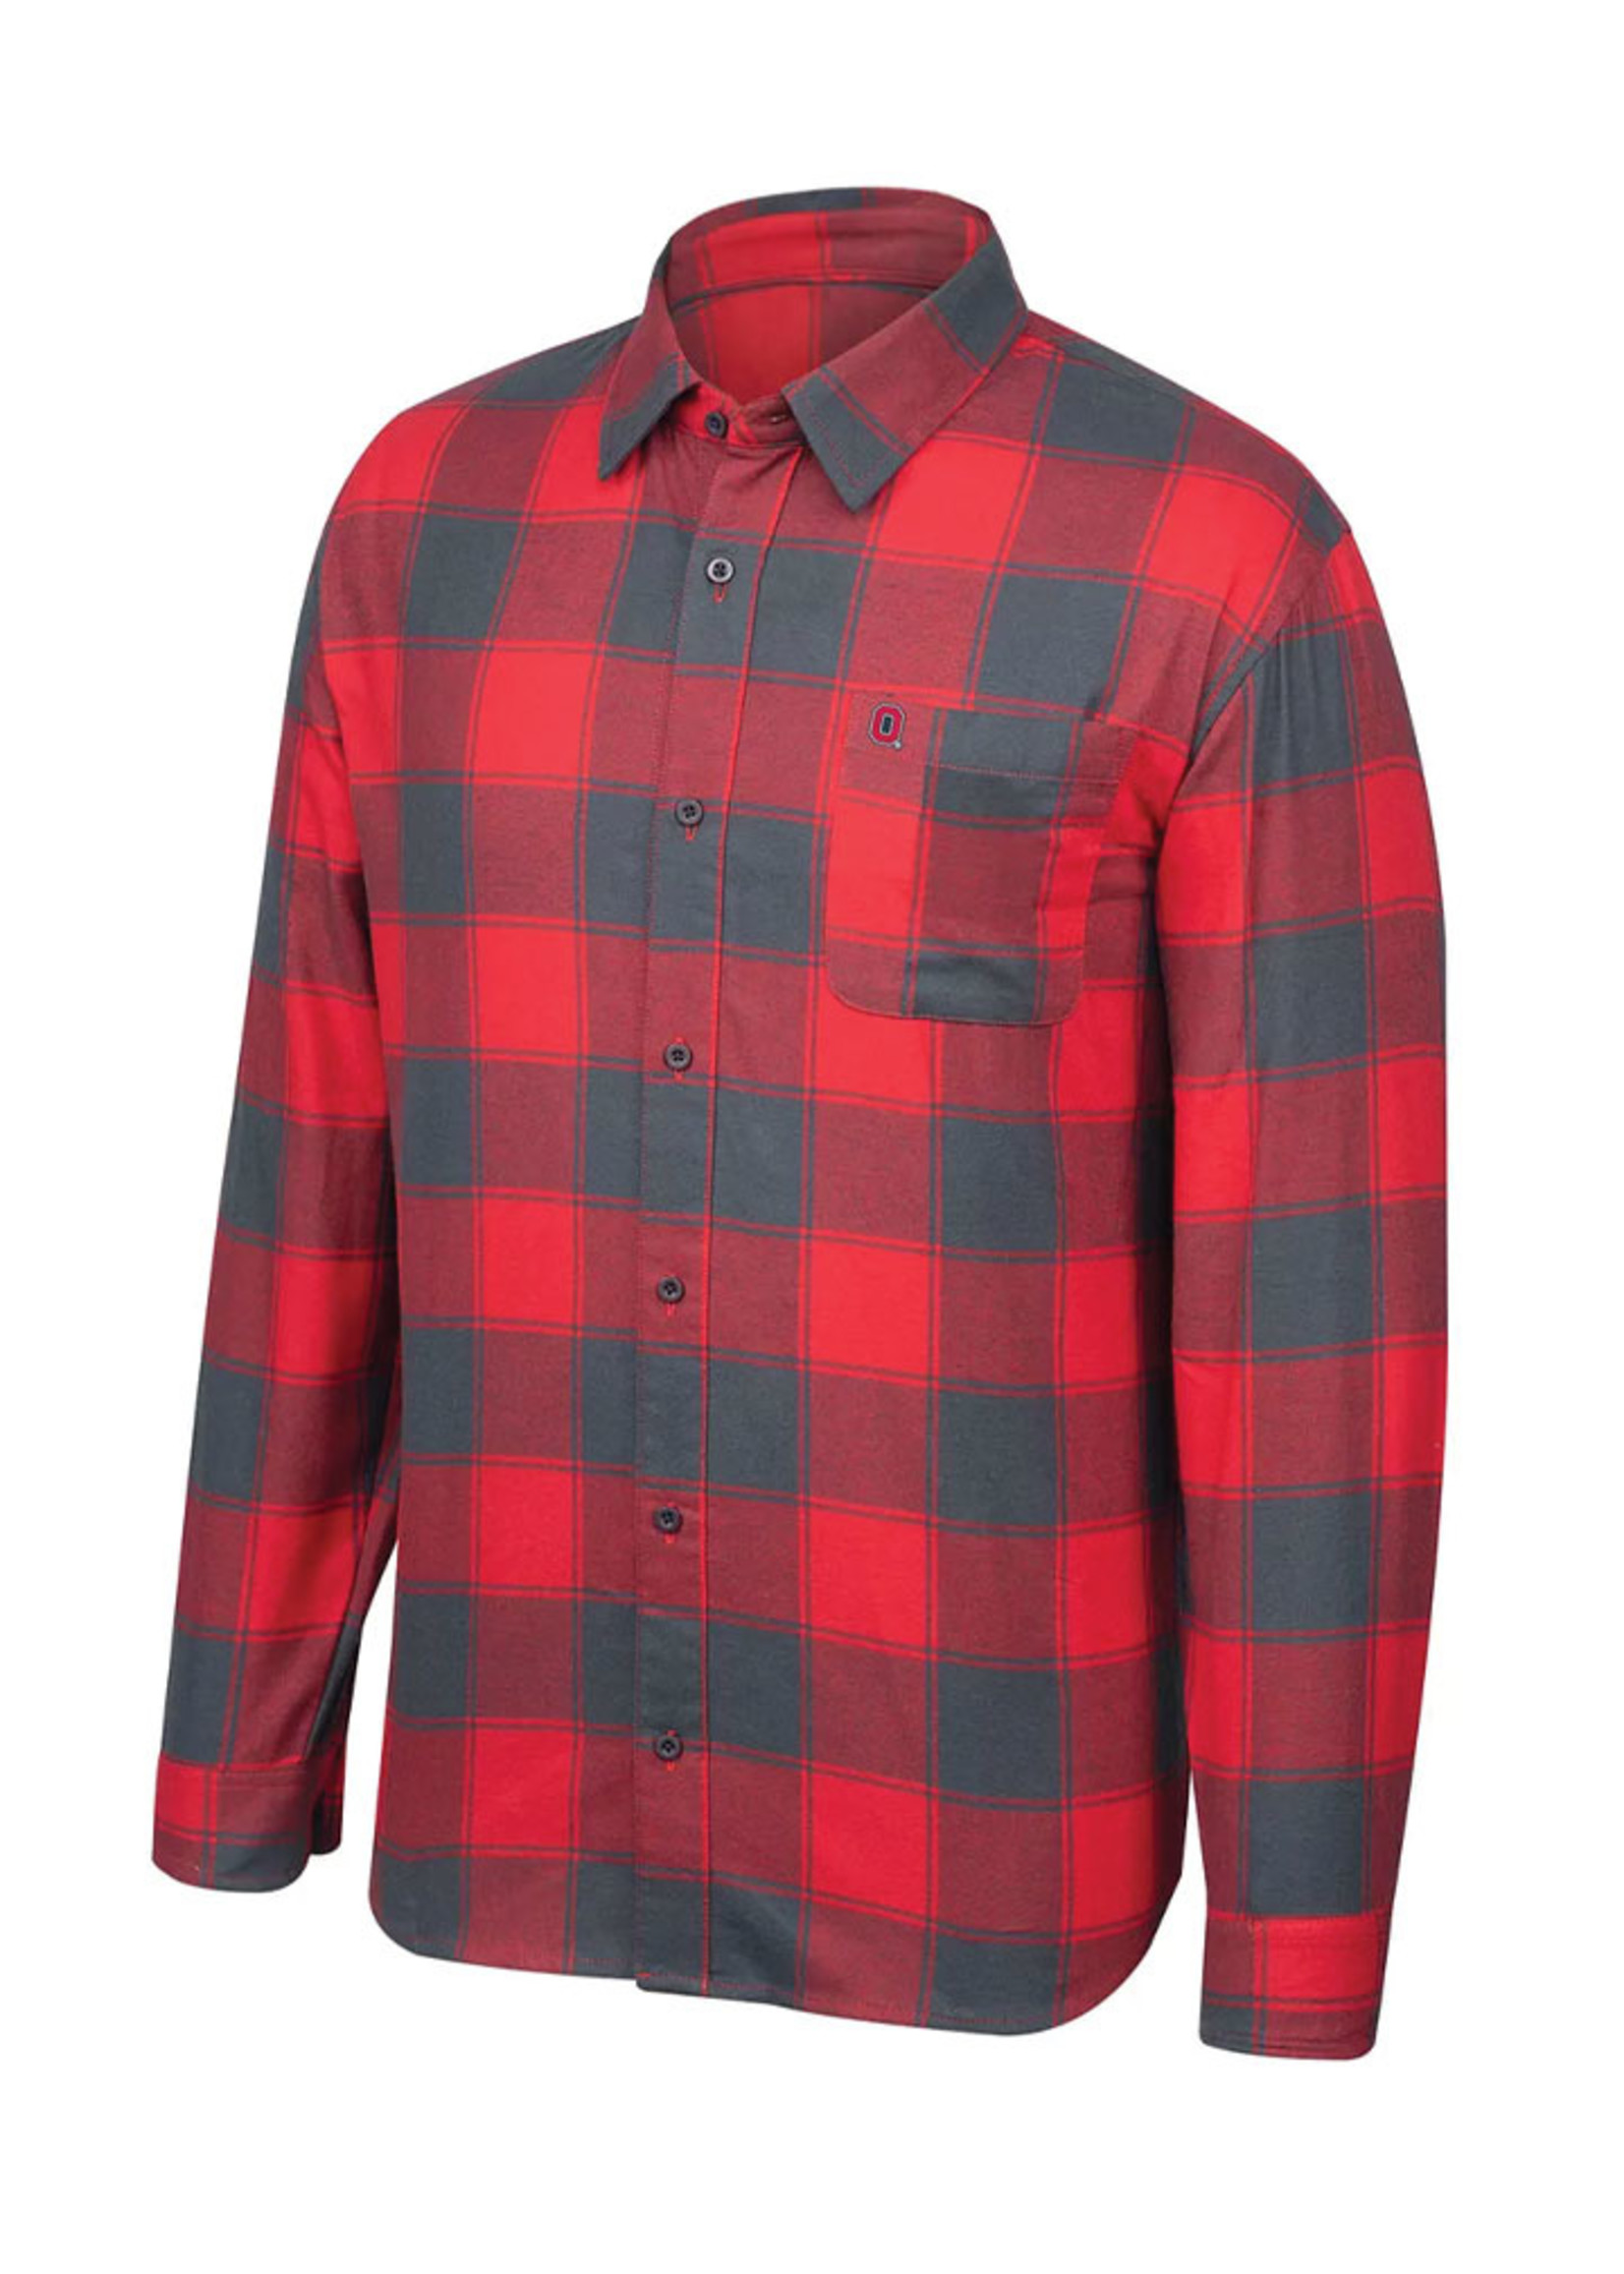 Ohio State Buckeyes Men's Flannel Shirt